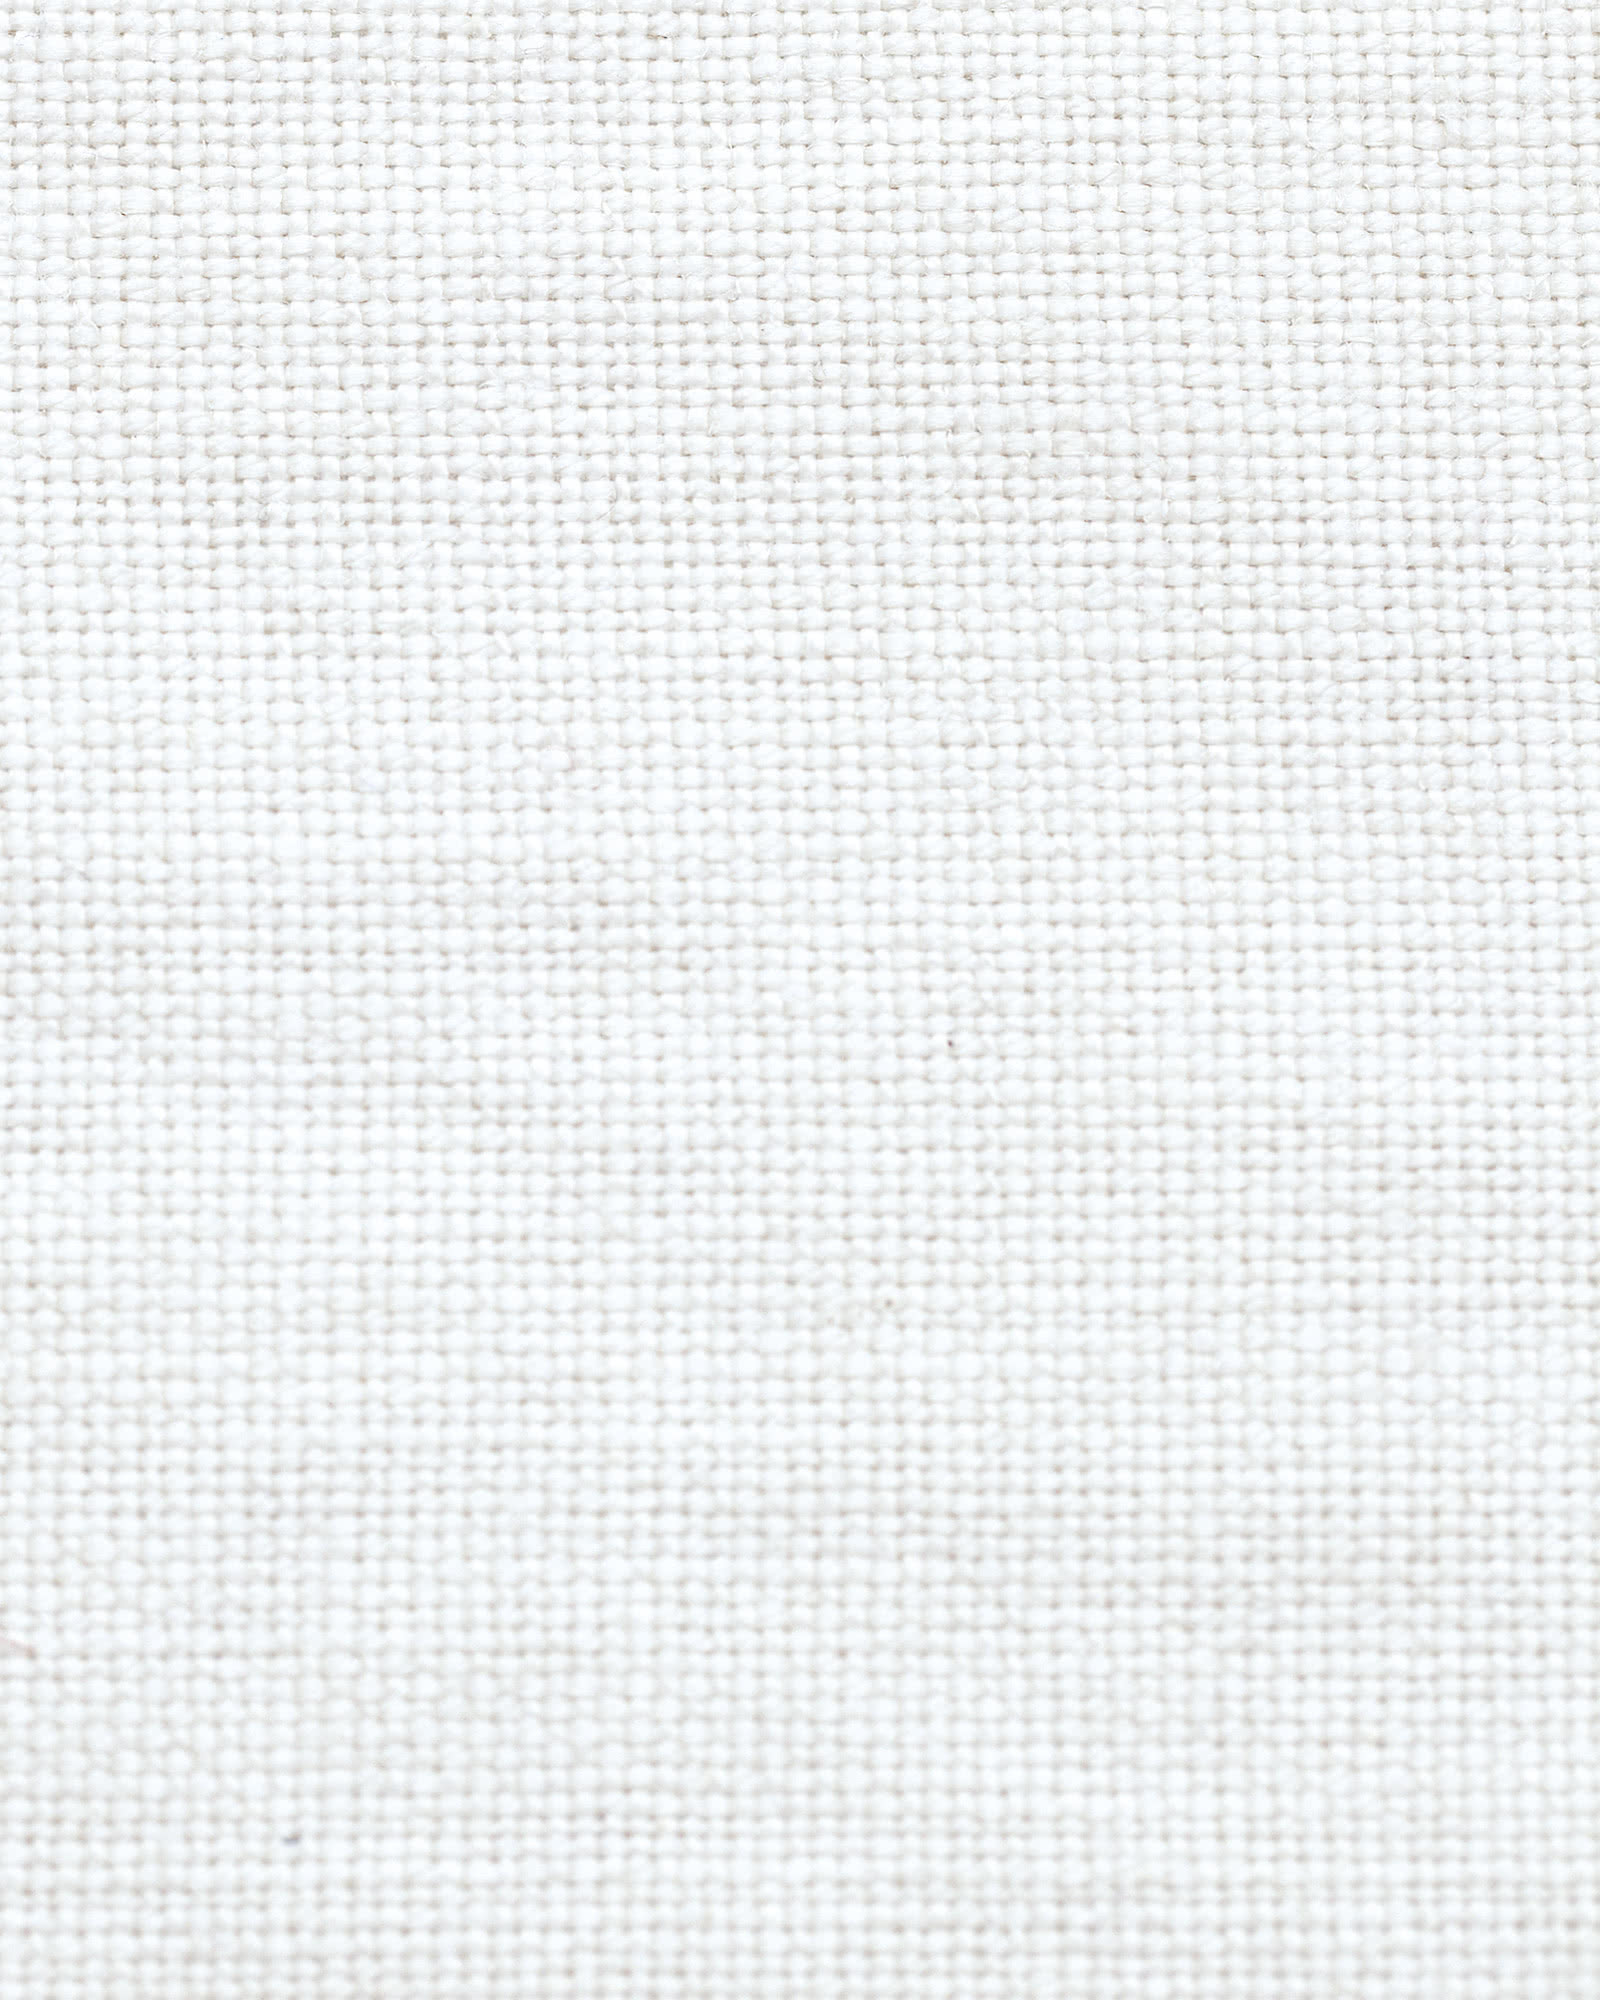 Fabric by the Yard – Washed Linen Fabric, Optic White